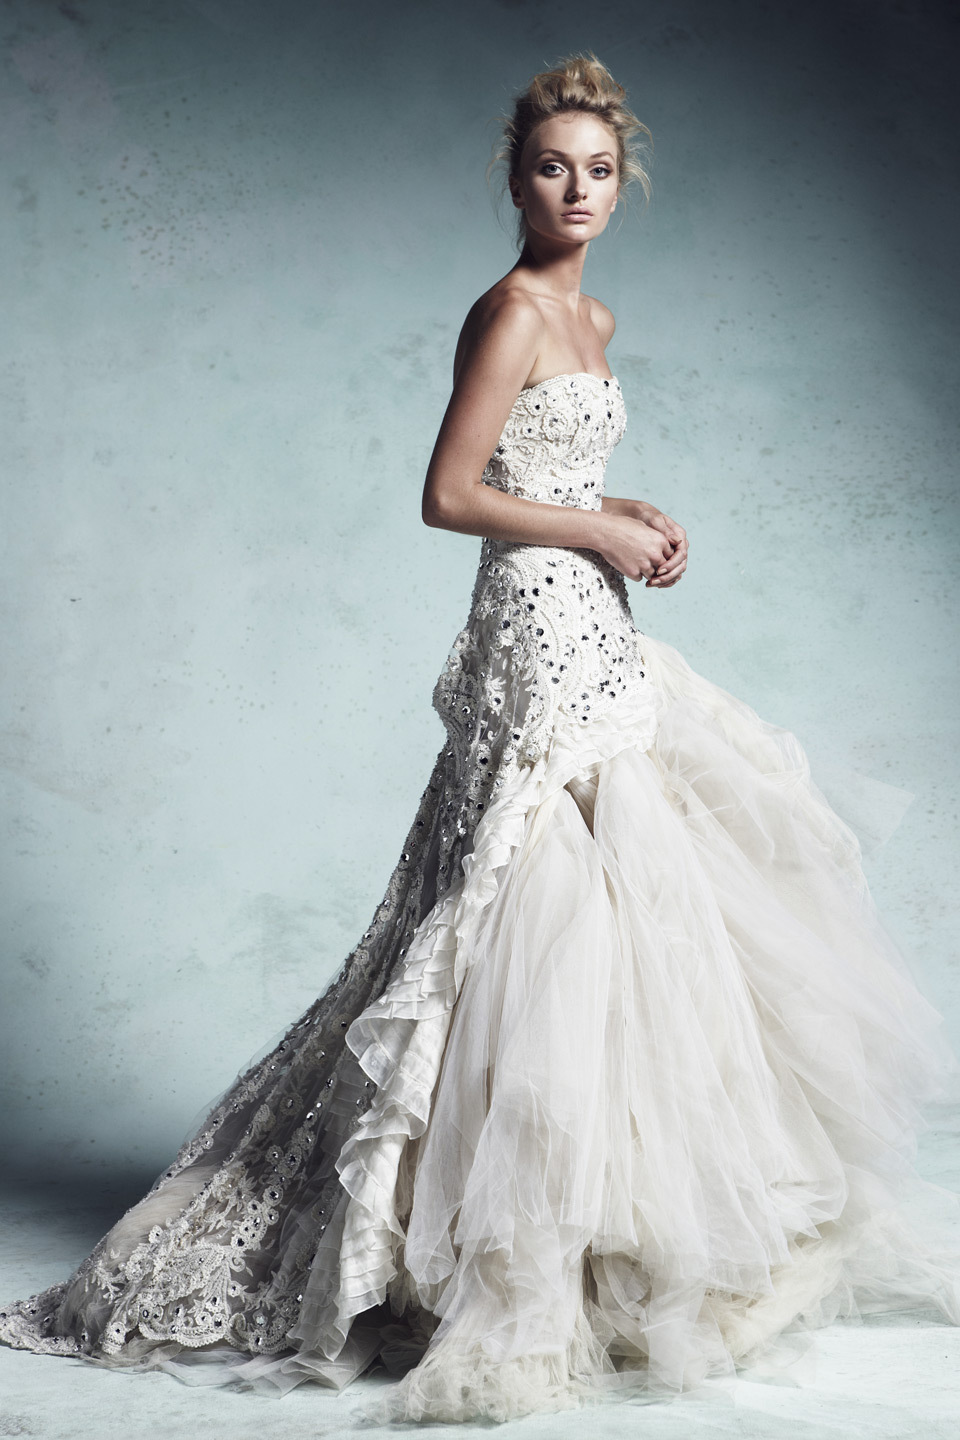 wedding dress by Collette Dinnigan 2013 bridal gowns 7